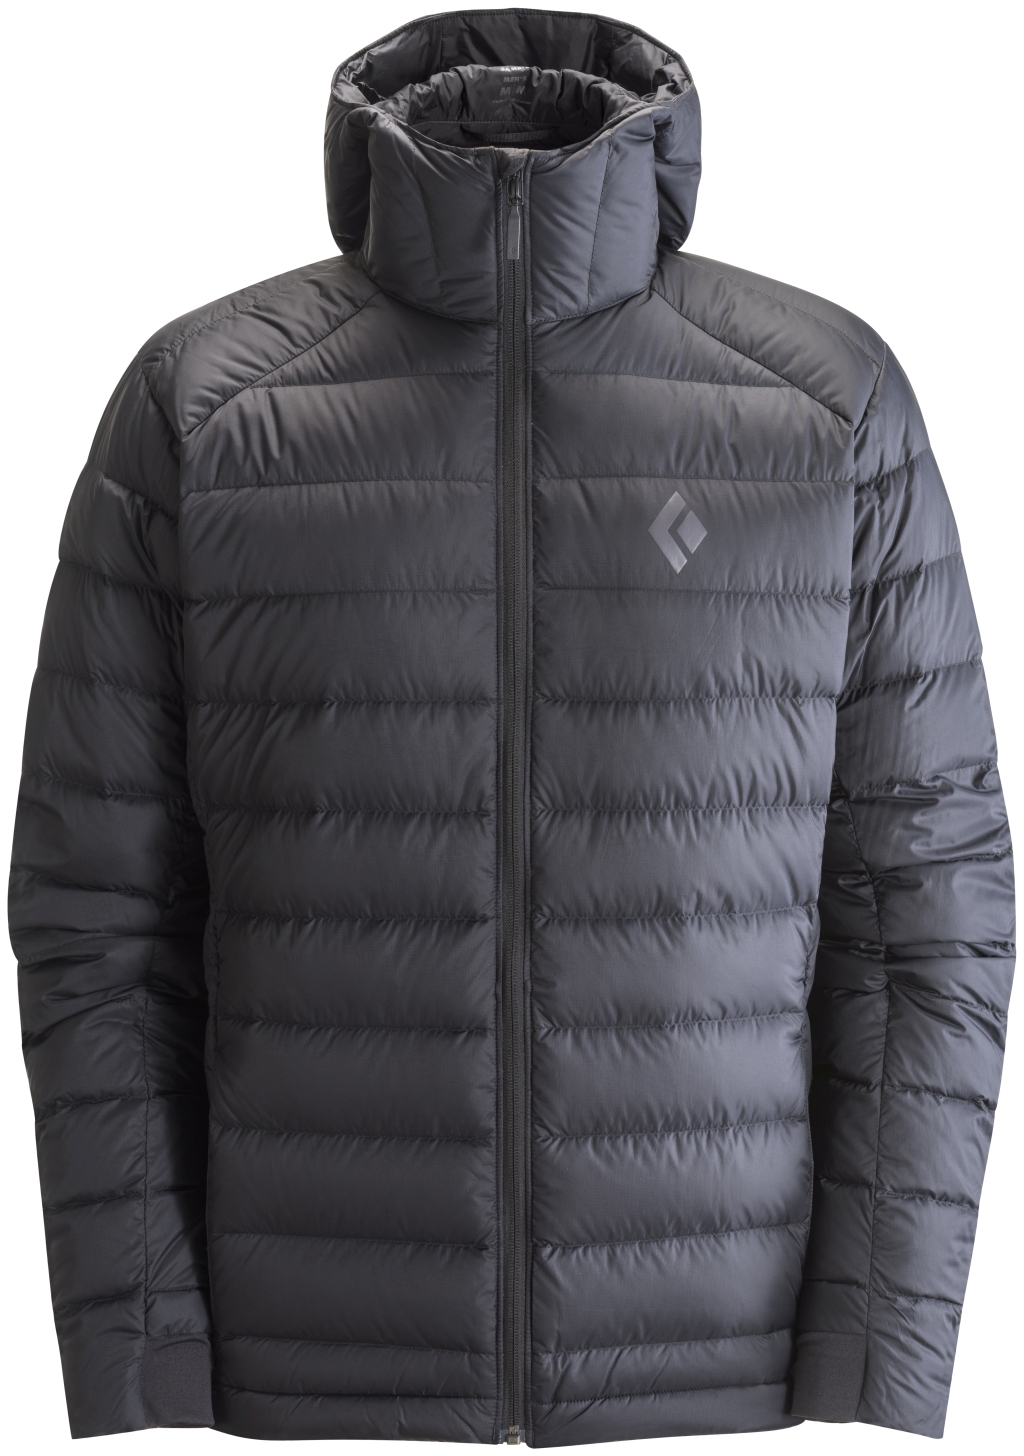 Black Diamond Cold Forge Hoody Black-30